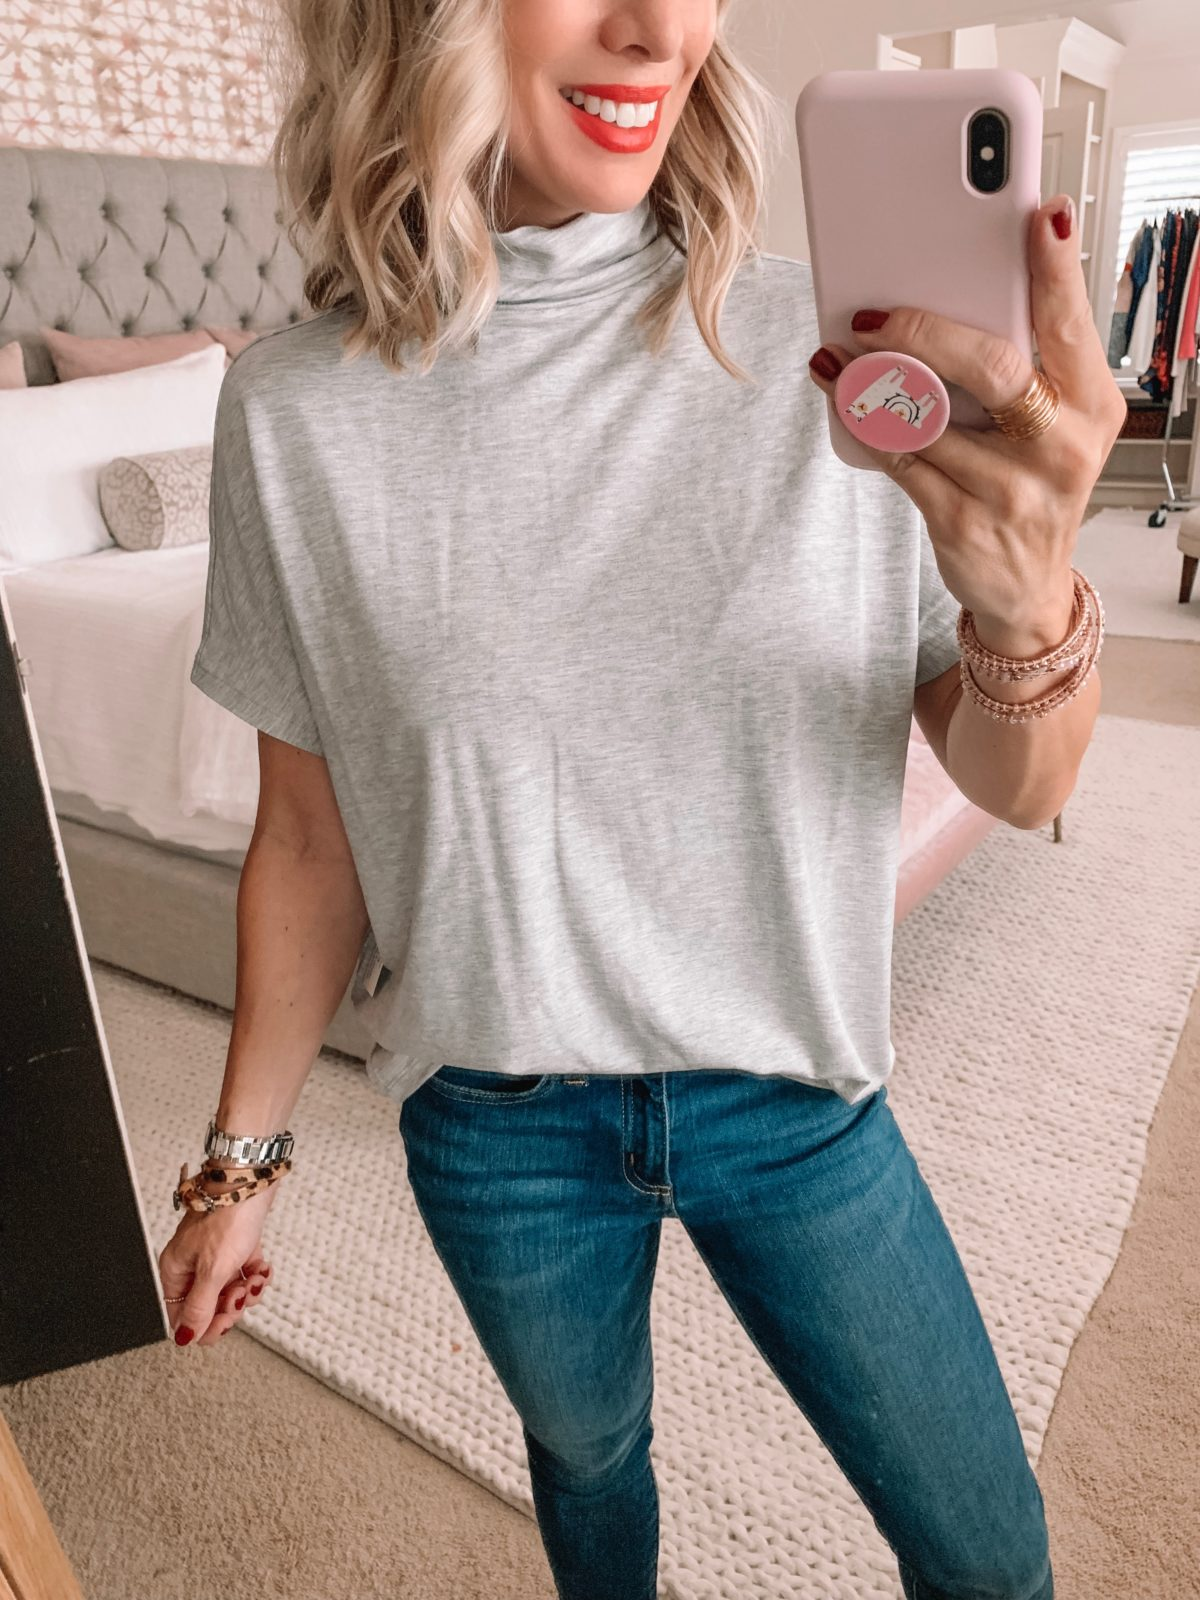 Amazon Prime Fashion- Grey Pullover and Jeans